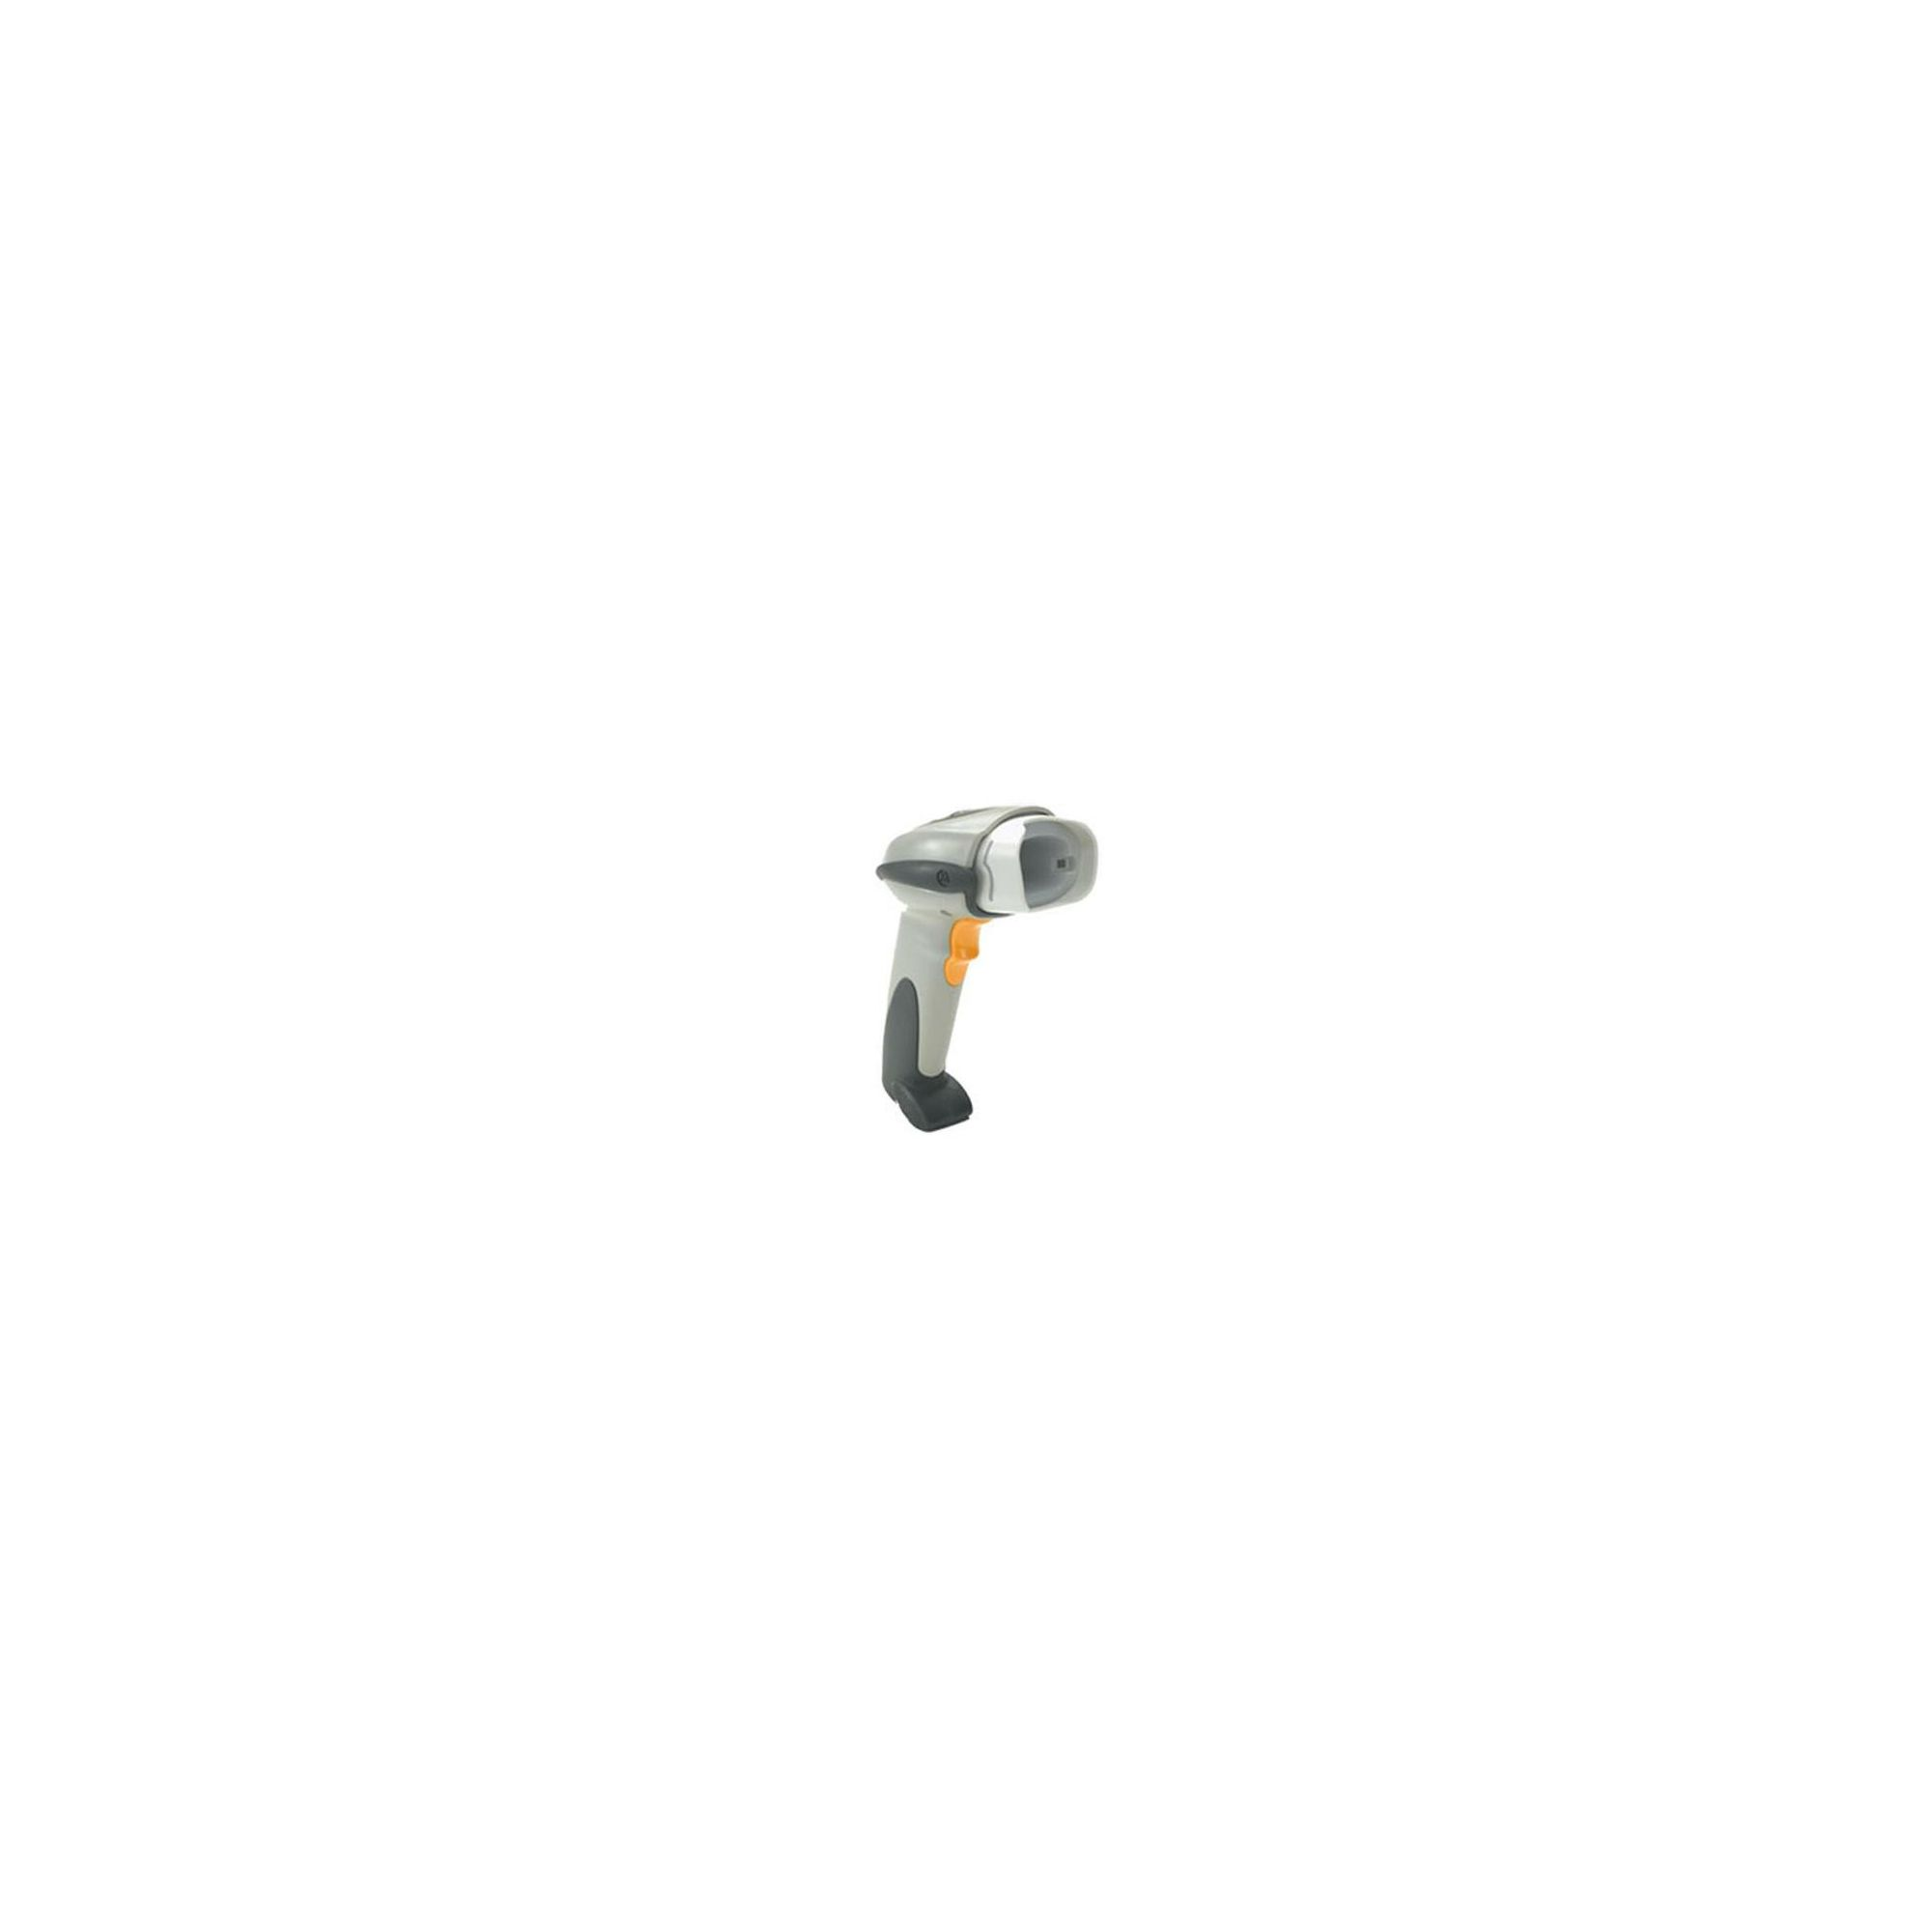 Motorola DS6707 Handheld Bar Code Scanner with USB Interface Kit (White) at Tesco Direct